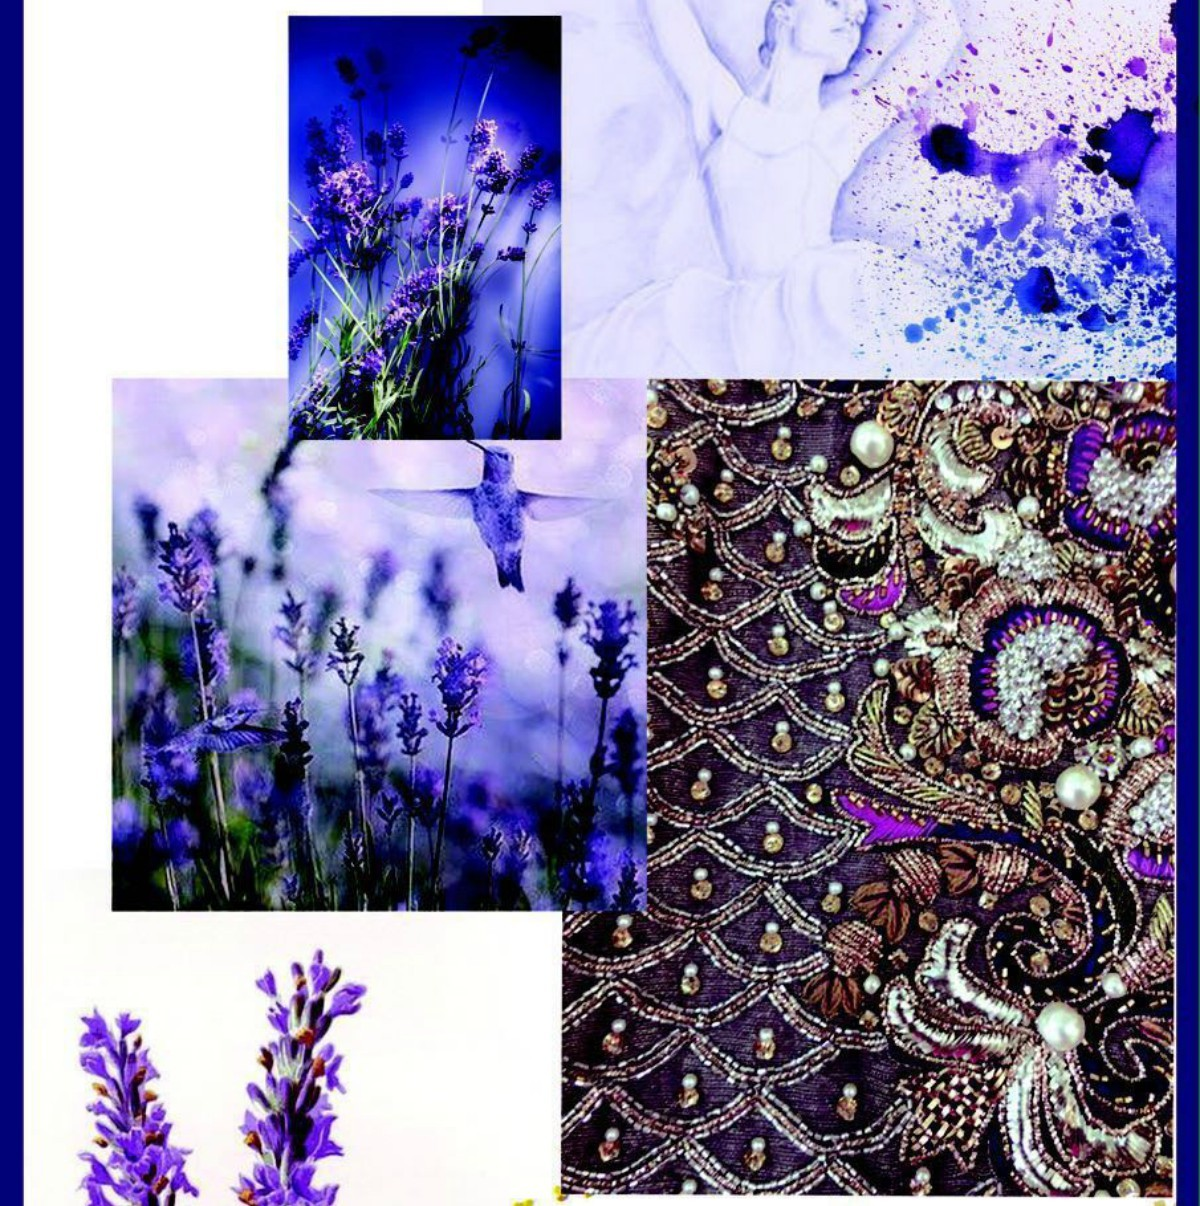 Asifa and Nabeel are inspired by fields of lavender in their upcoming collection